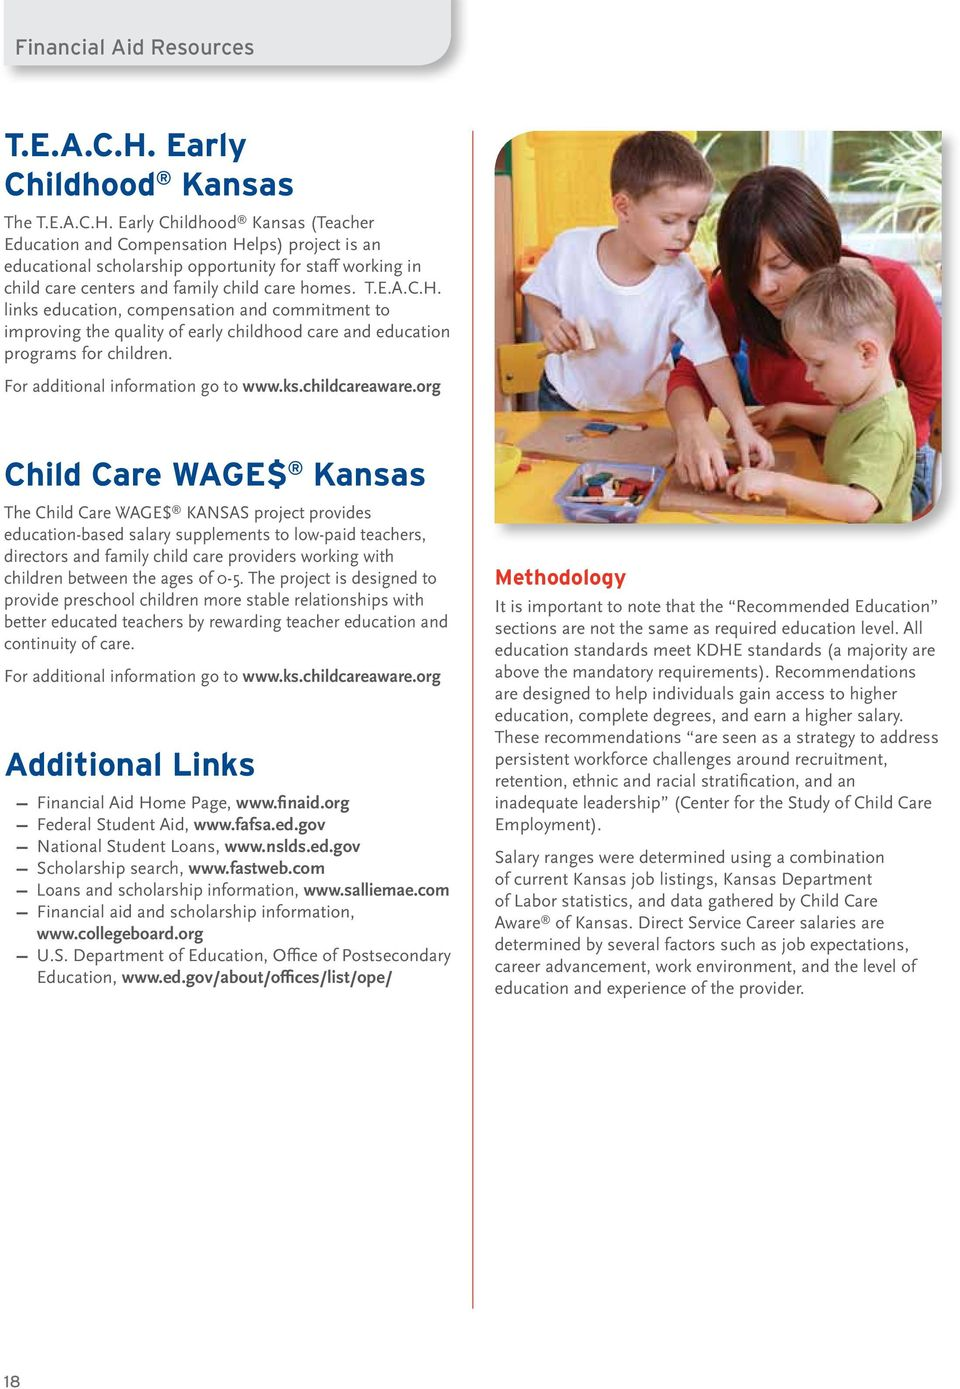 Early Childhood Kansas (Teacher Education and Compensation Helps) project is an educational scholarship opportunity for staff working in child care centers and family child care homes. T.E.A.C.H. links education, compensation and commitment to improving the quality of early childhood care and education programs for children.